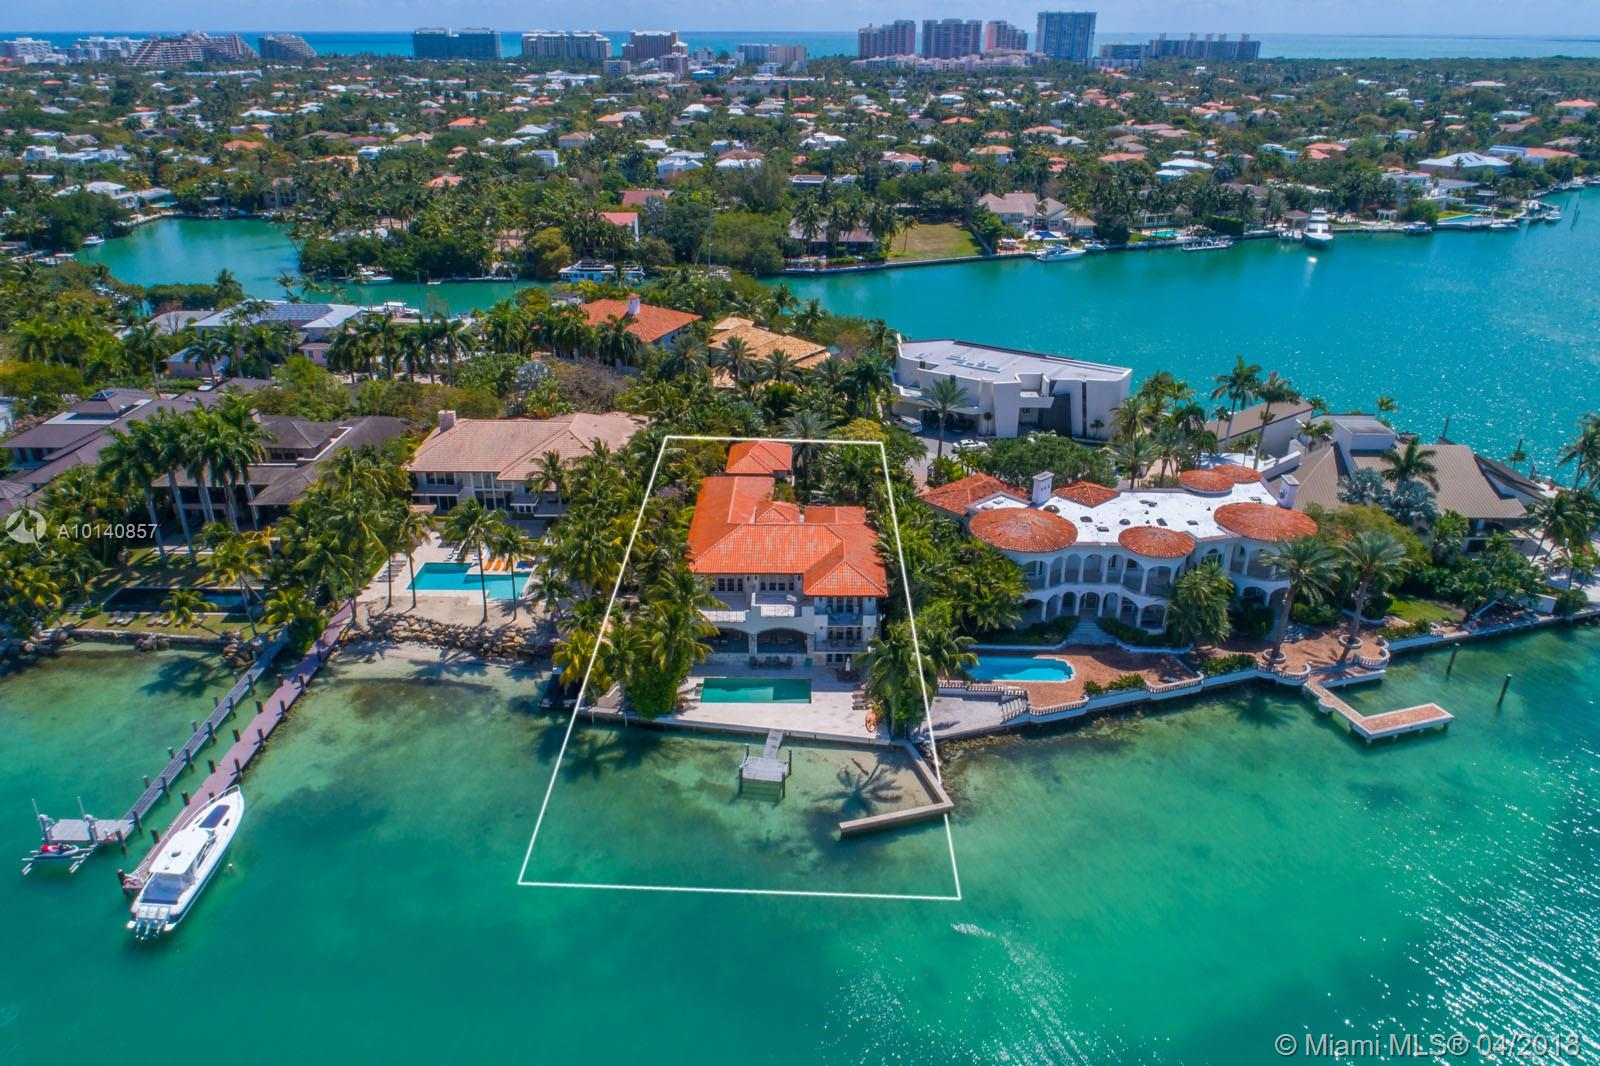 Absolutely Stunning, Magnificent And One Of A Kind 2 Story Estate Which Offers Breathtaking Panoramic Views Of Biscayne Bay. Designed To Enjoy Every Room In The House With Exquisite Architecture, Comfort, Elegance And Charm. Approx 7, 500 Sq Ft Of A/C, 19, 085 Sq Ft Of Land .. 7 Bedrooms, 8.5 Baths, Office, Family Room, Formal Living And Dining Room Areas, Gourmet Kitchen, 3 Car Garage, Gorgeous Terraces, Small Man Created Beach And Wonderful Dock.Located On Exclusive Harbor Point This Is A Dream Come True.